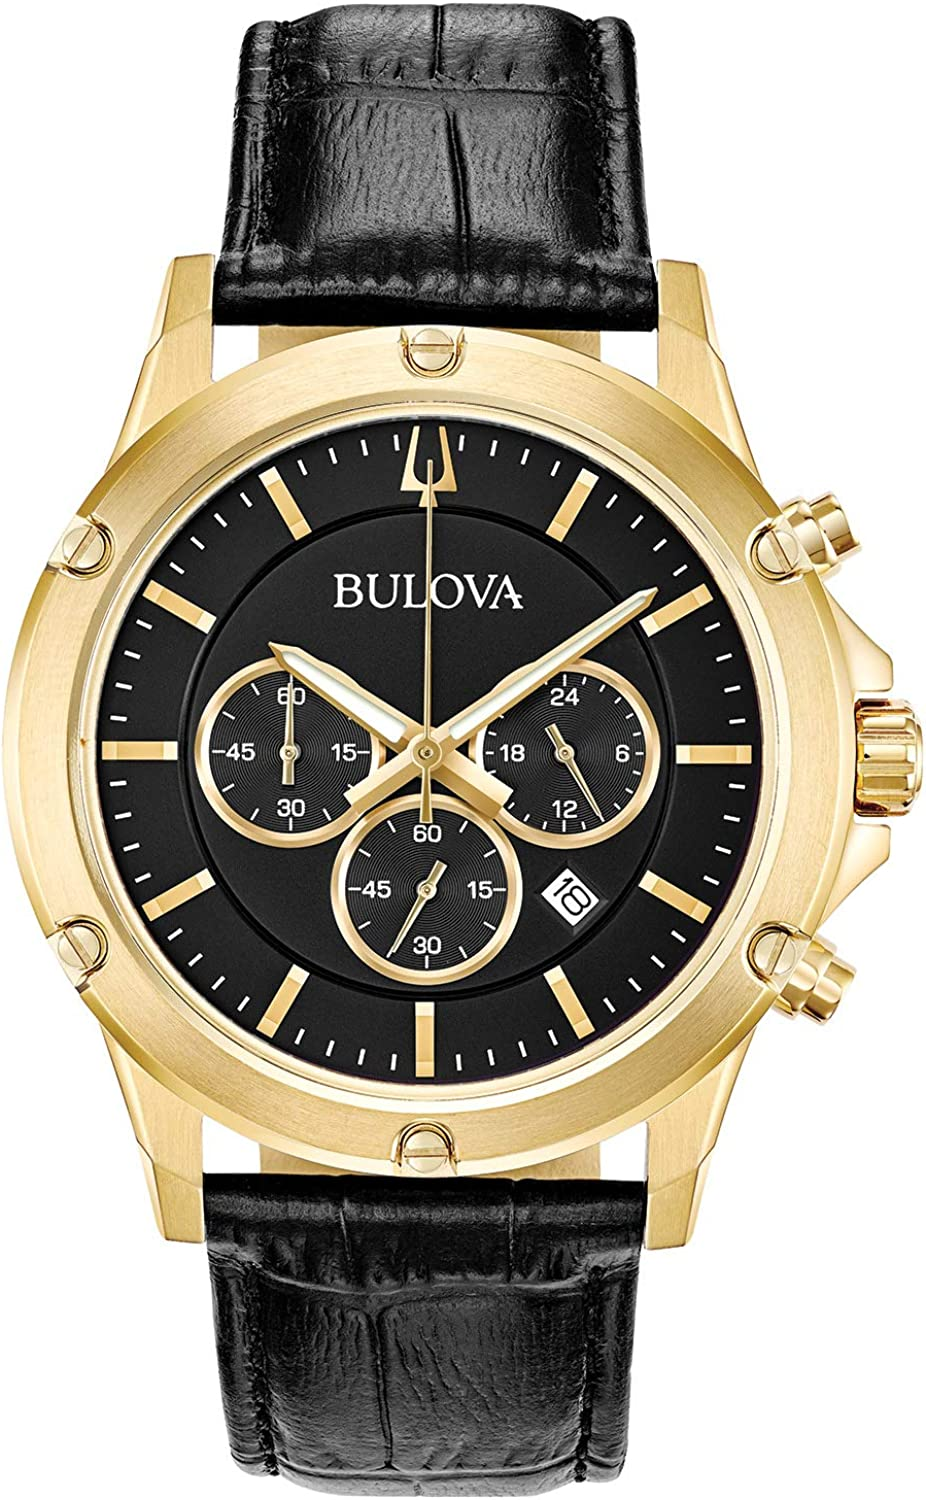 Bulova Dress Watch Model 97B179